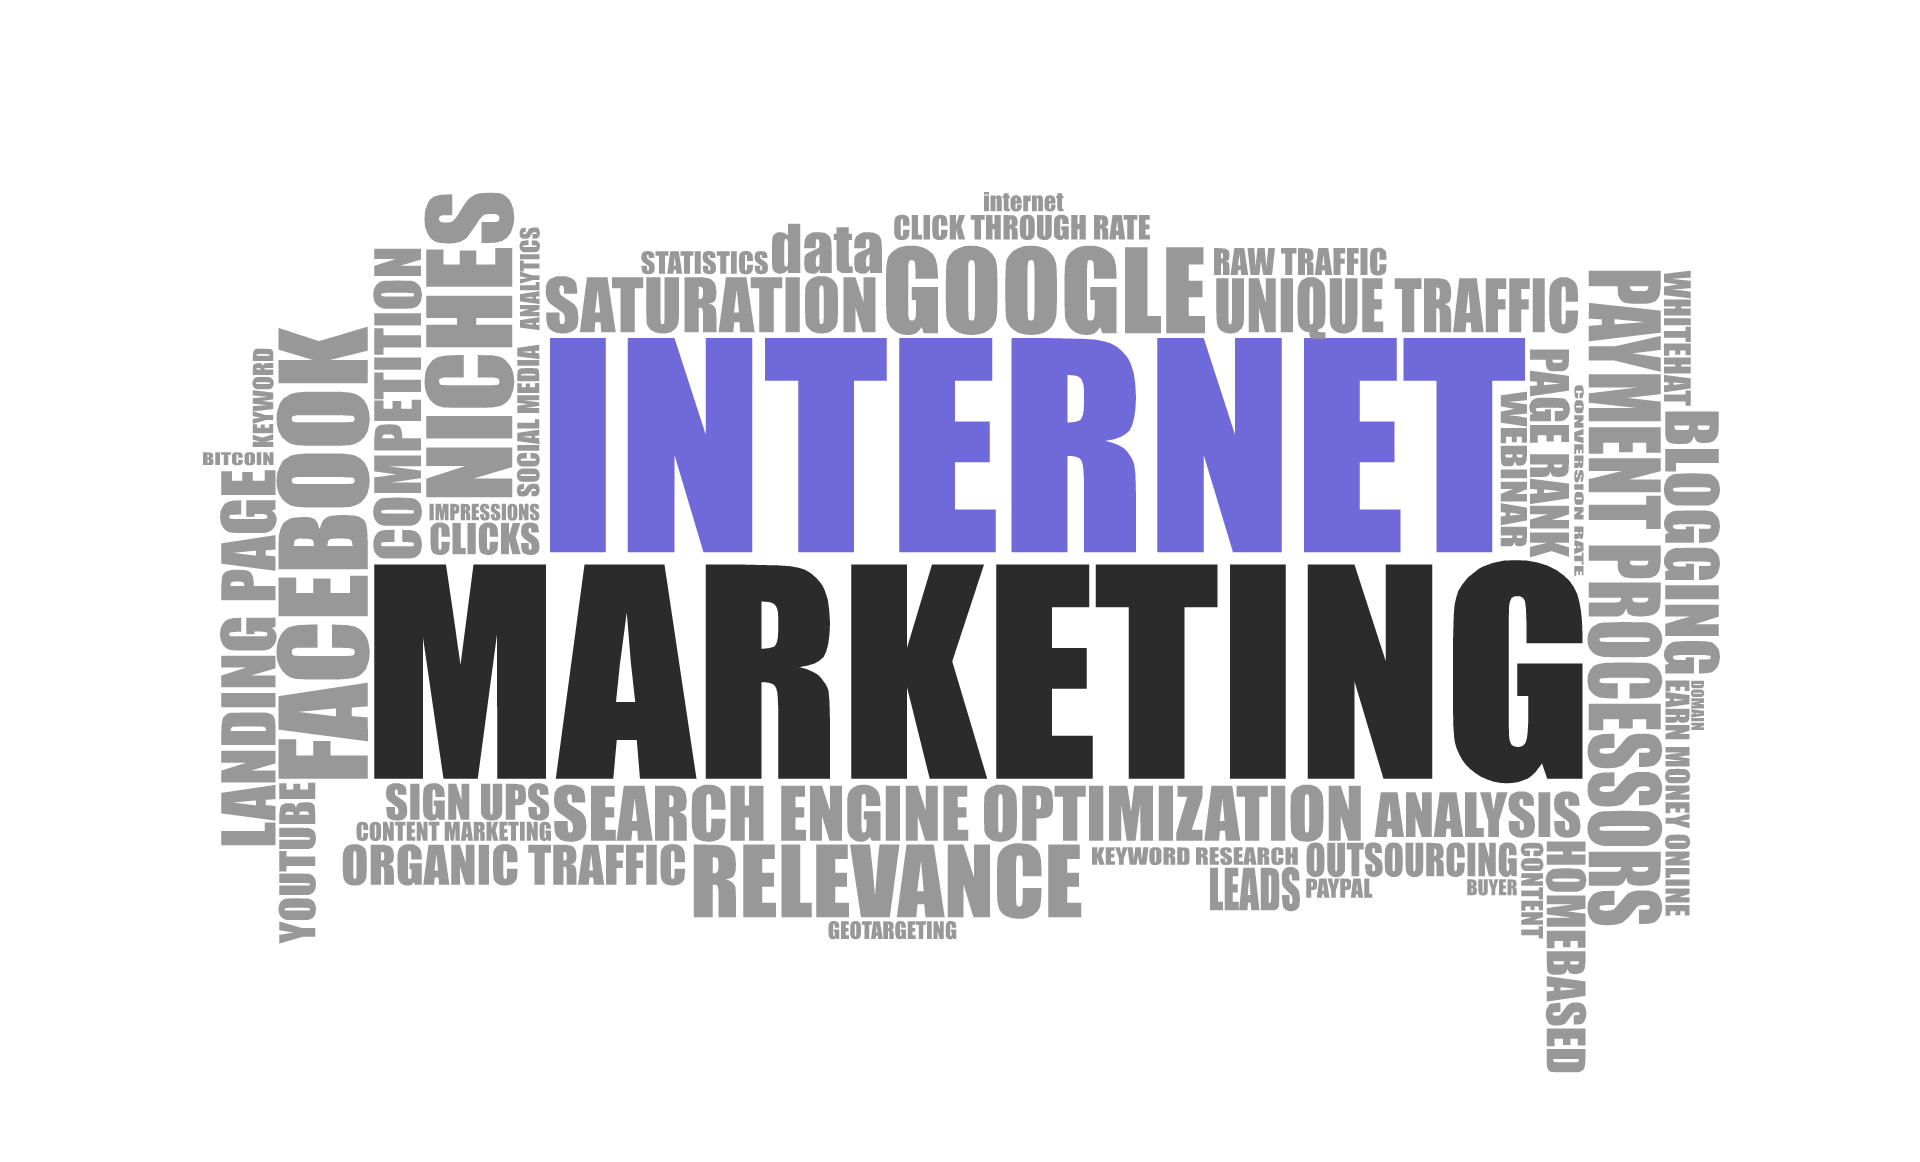 Internet marketing terminologies